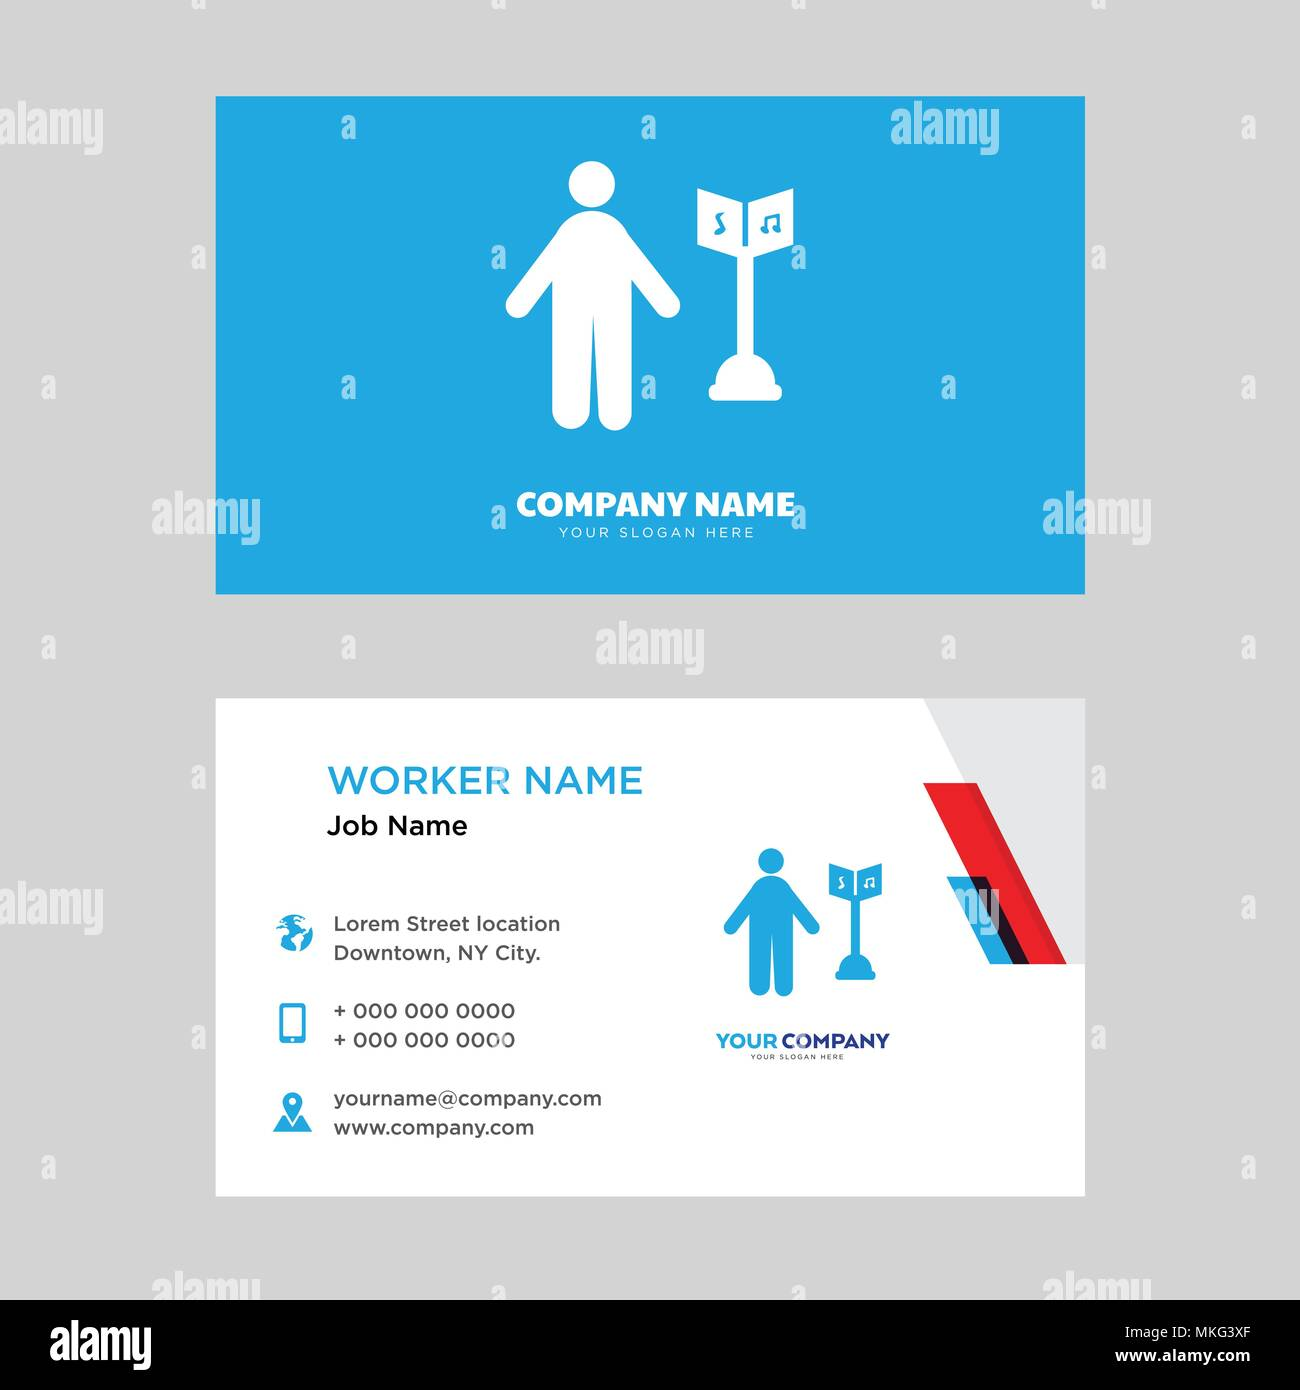 Musician business card design template, Visiting for your company ...